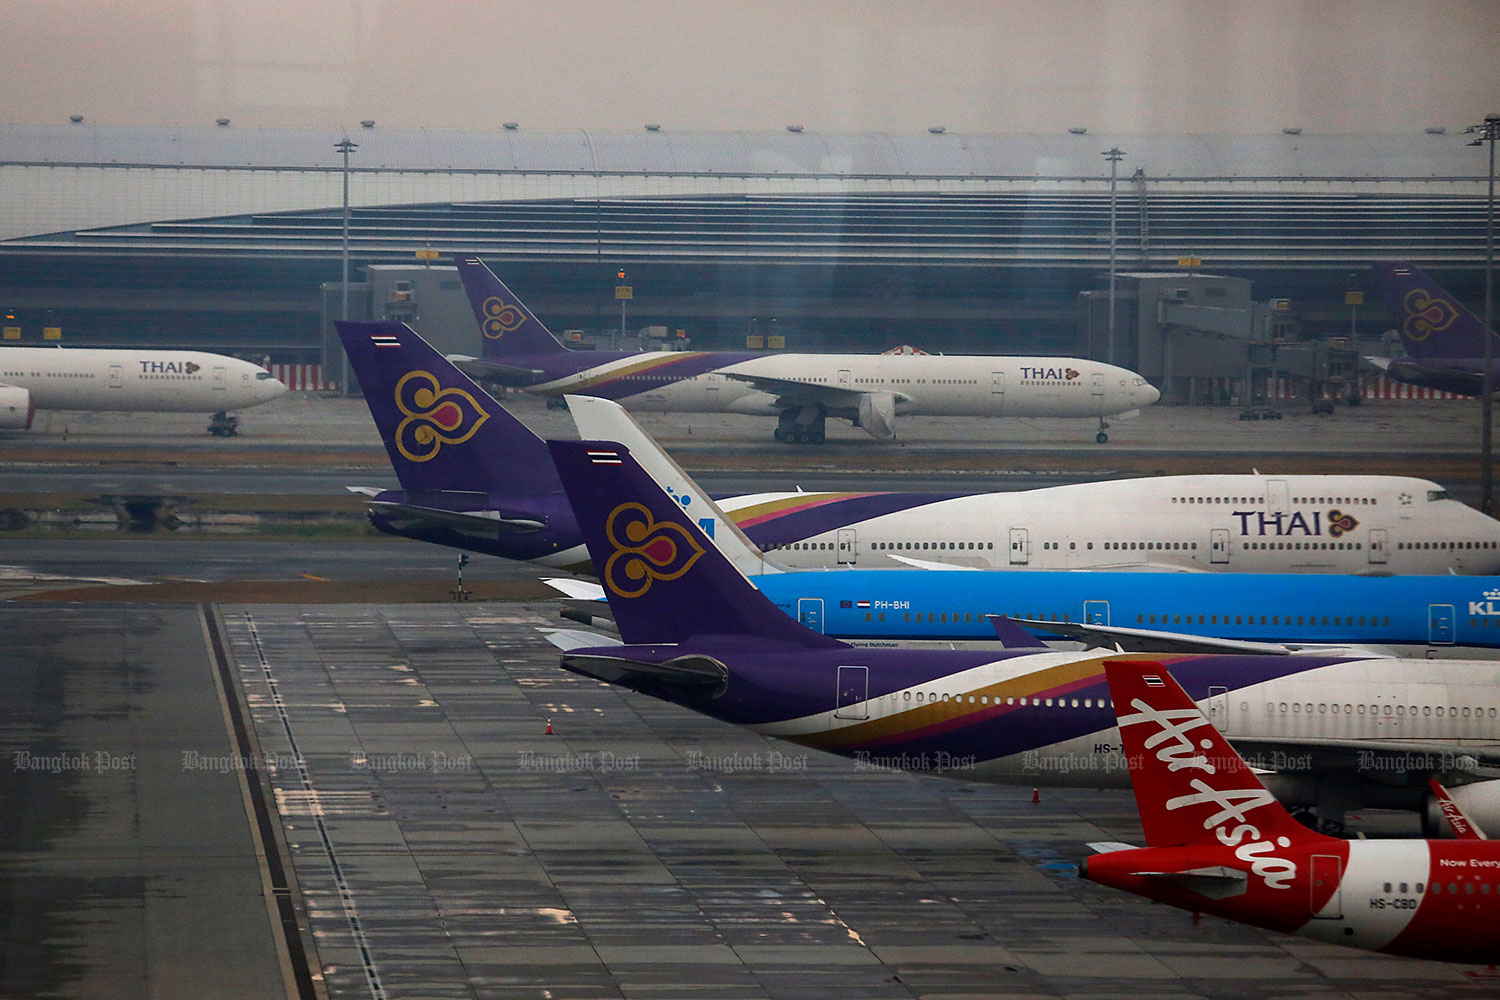 Aircraft of Thai AirAsia and Thai Airways International are parked at Suvarnabhumi airport. The Civil Aviation Authority of Thailand reported that number of domestic passengers stumbled 27.1% year-on-year in the fourth quarter, while international flights dropped by 99.1% during the period. (Photo by Wichan Charoenkiatpakul)